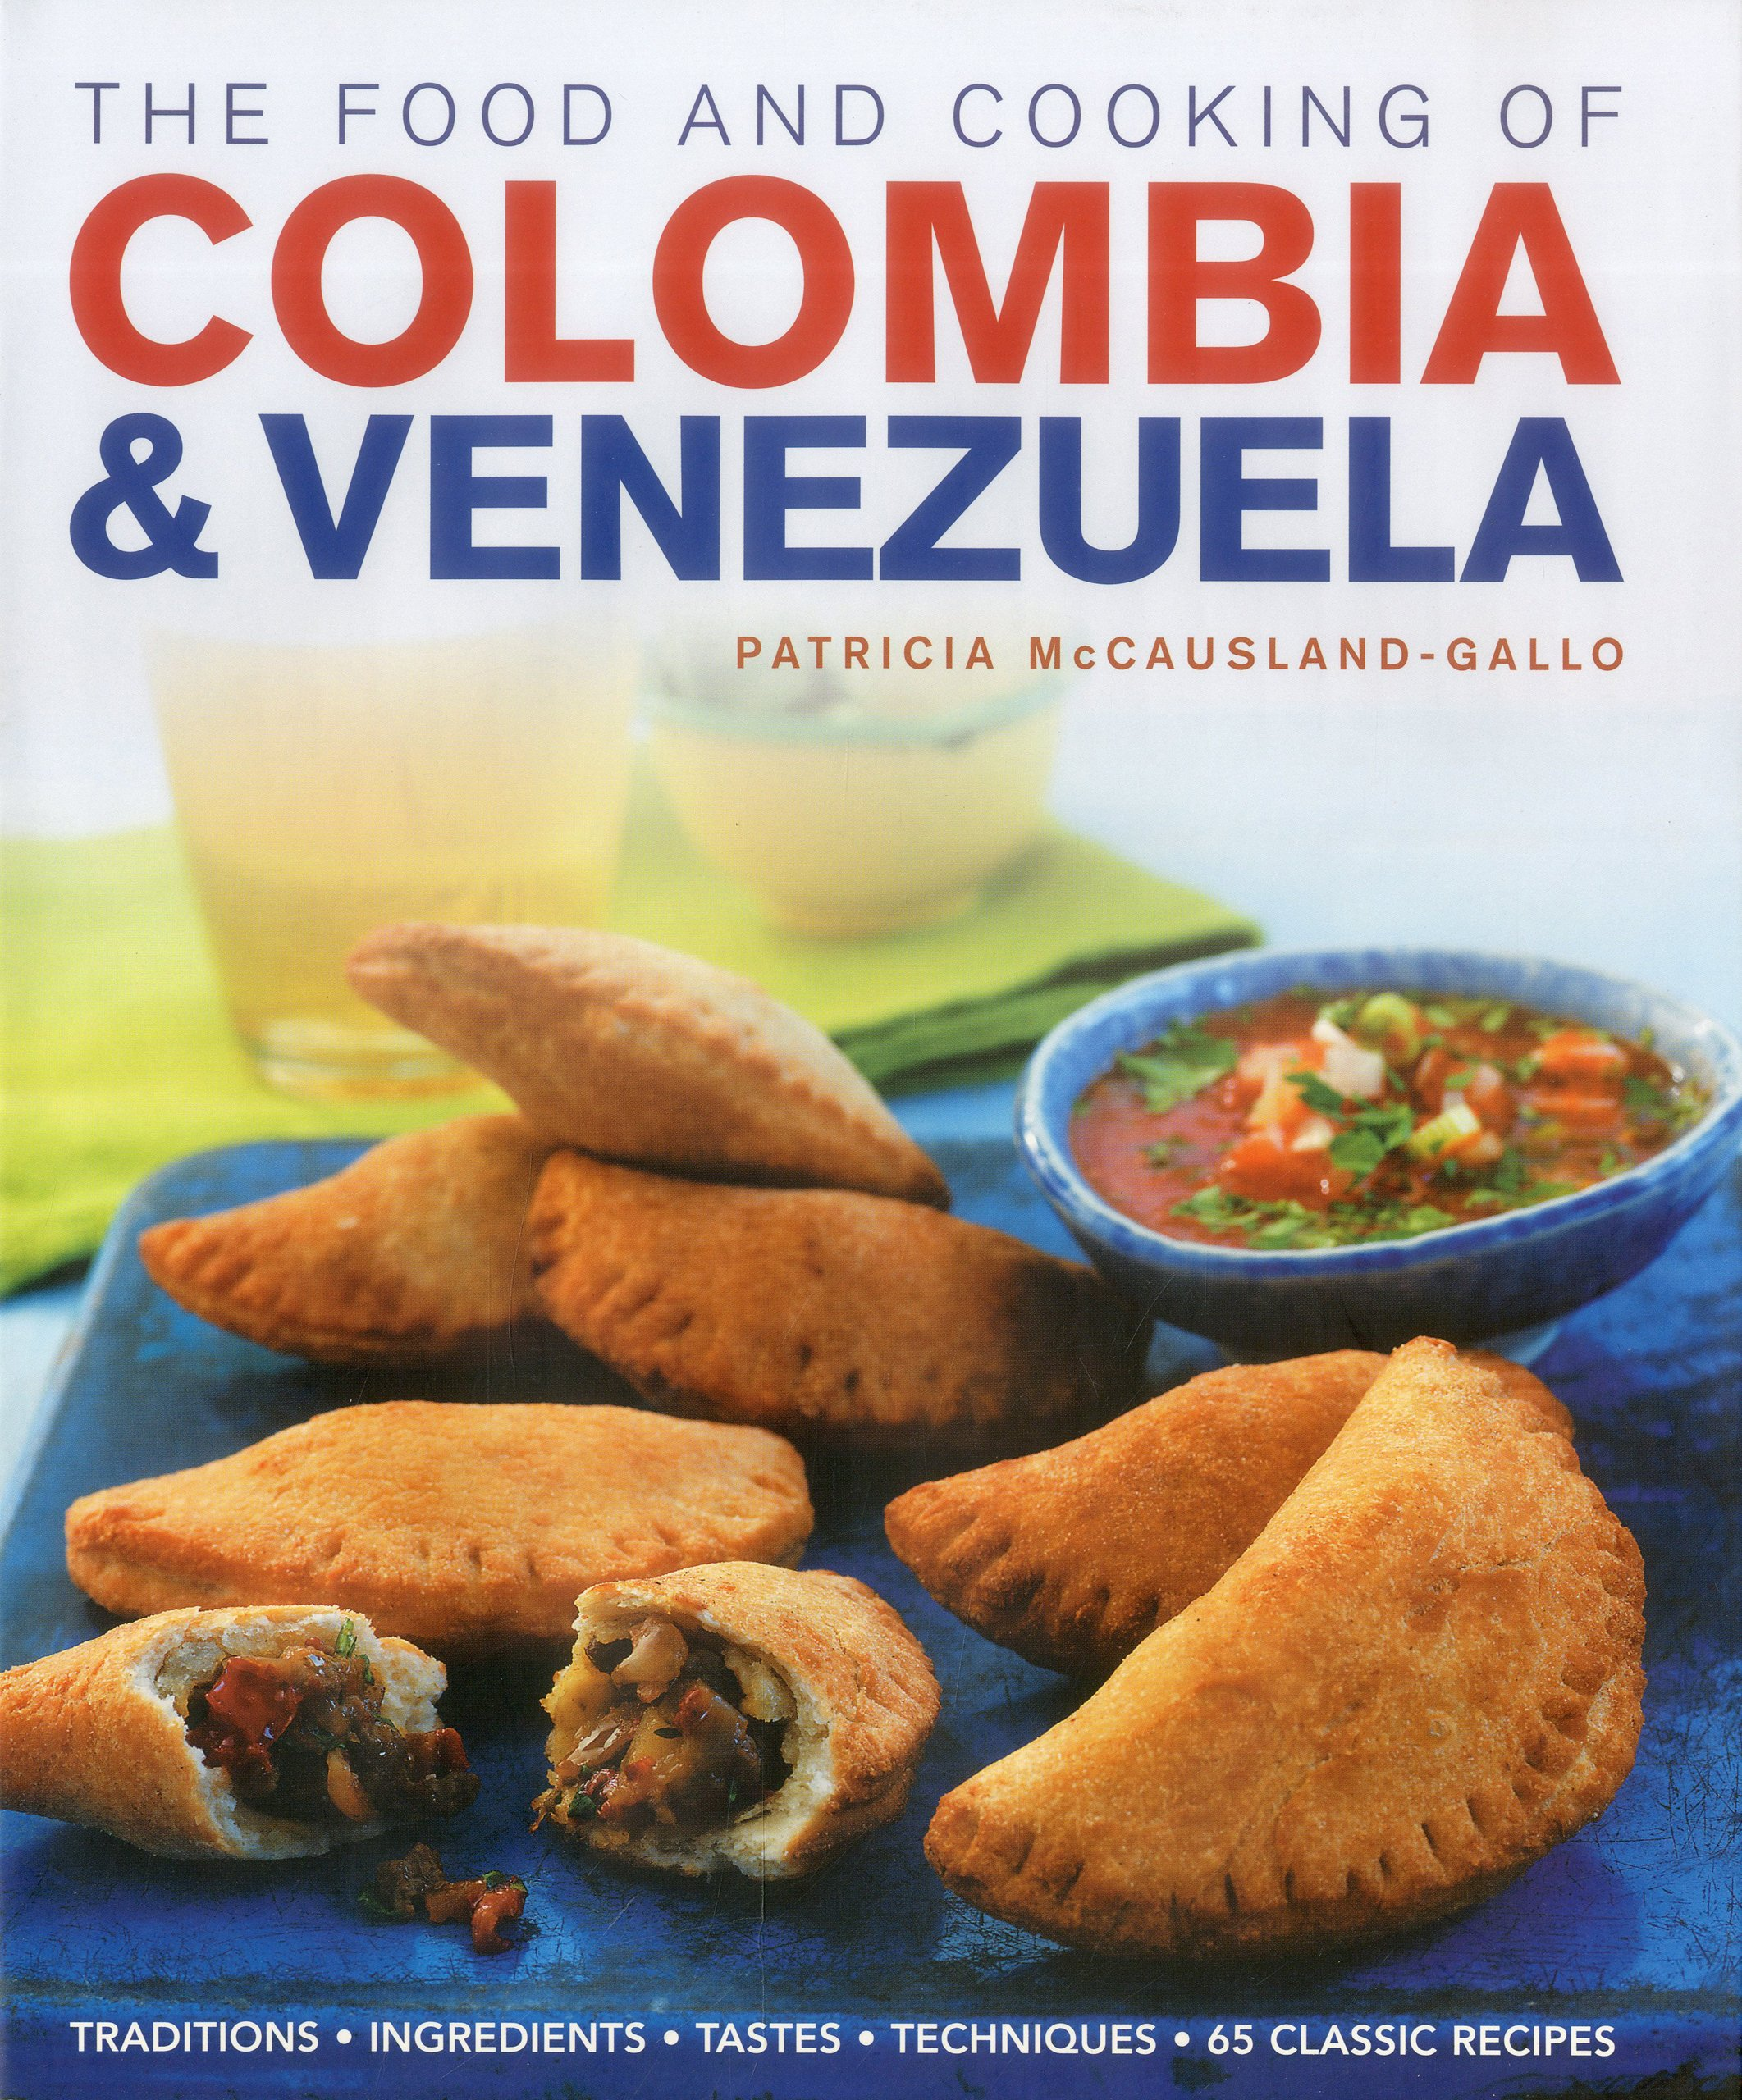 The food and cooking of colombia venezuela traditions the food and cooking of colombia venezuela traditions ingredients tastes techniques 65 classic recipes patricia mccausland gallo 9781903141830 forumfinder Choice Image